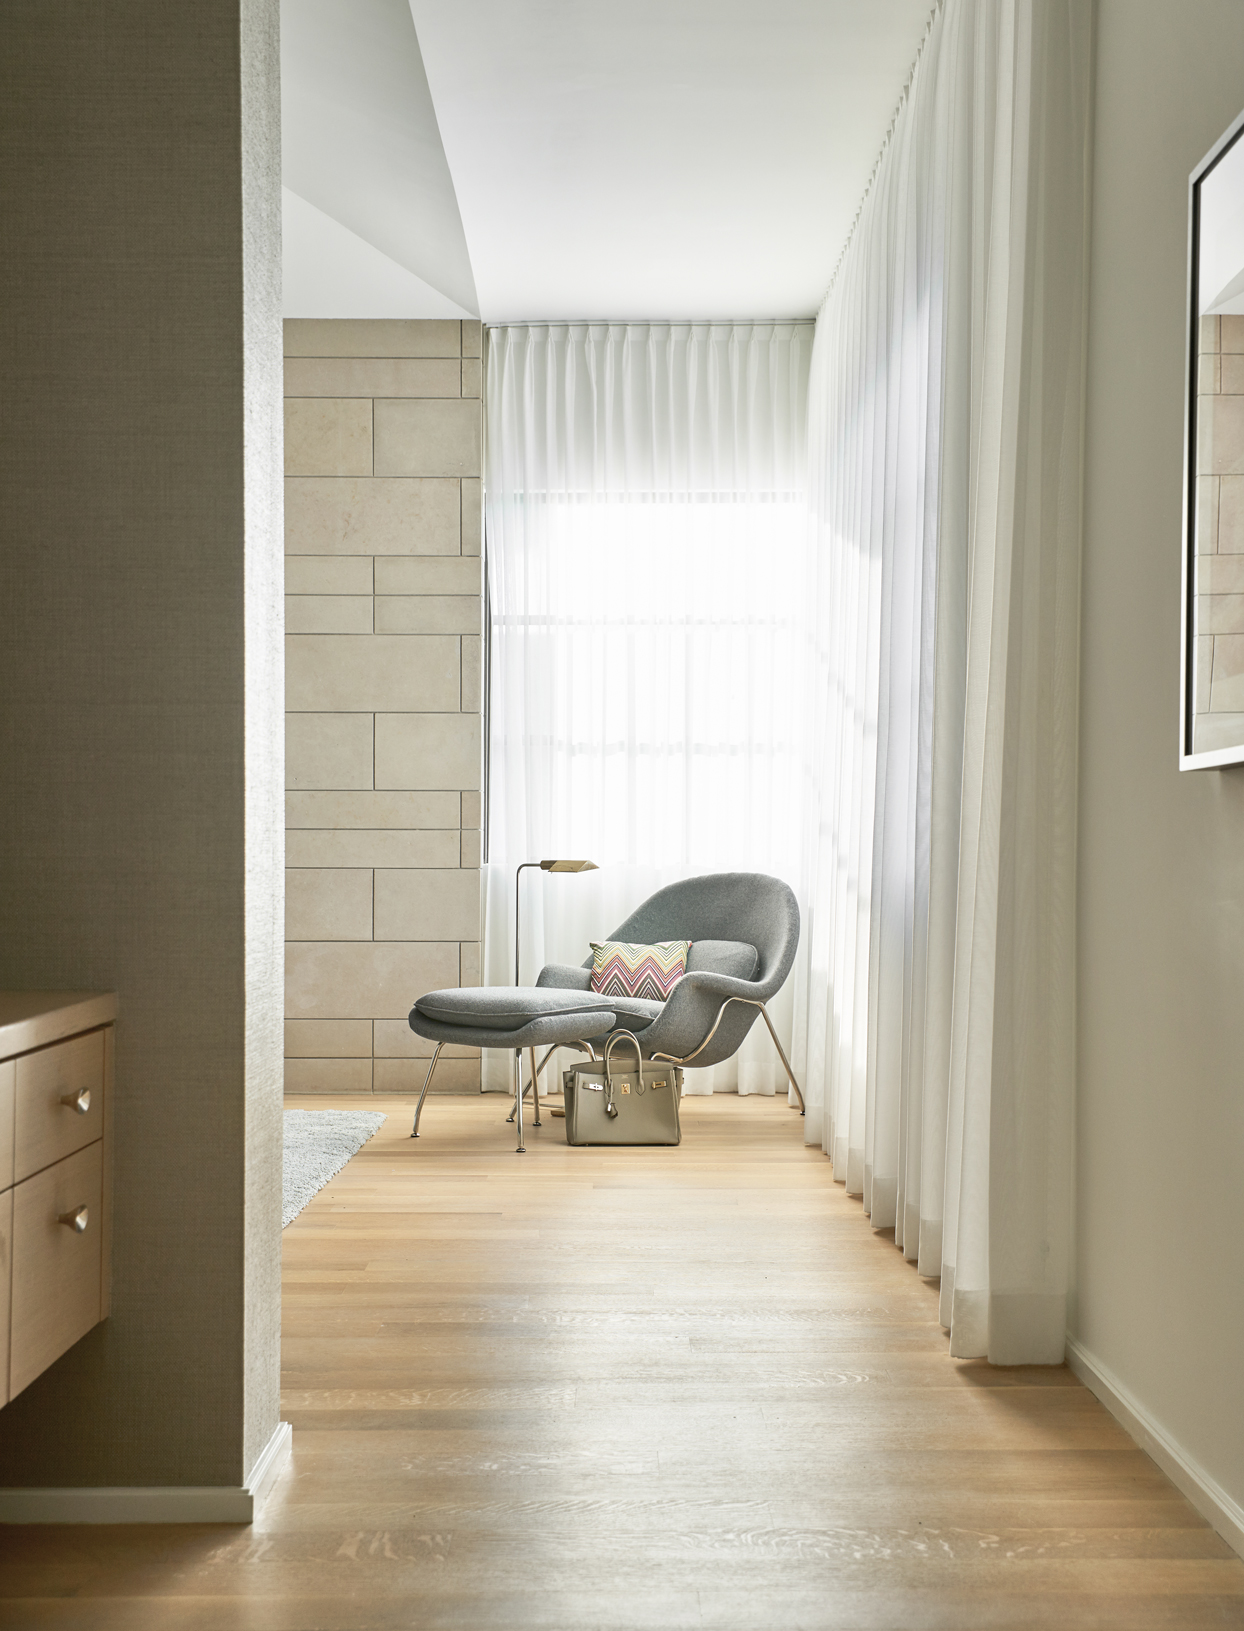 gray chair in corner with curtains